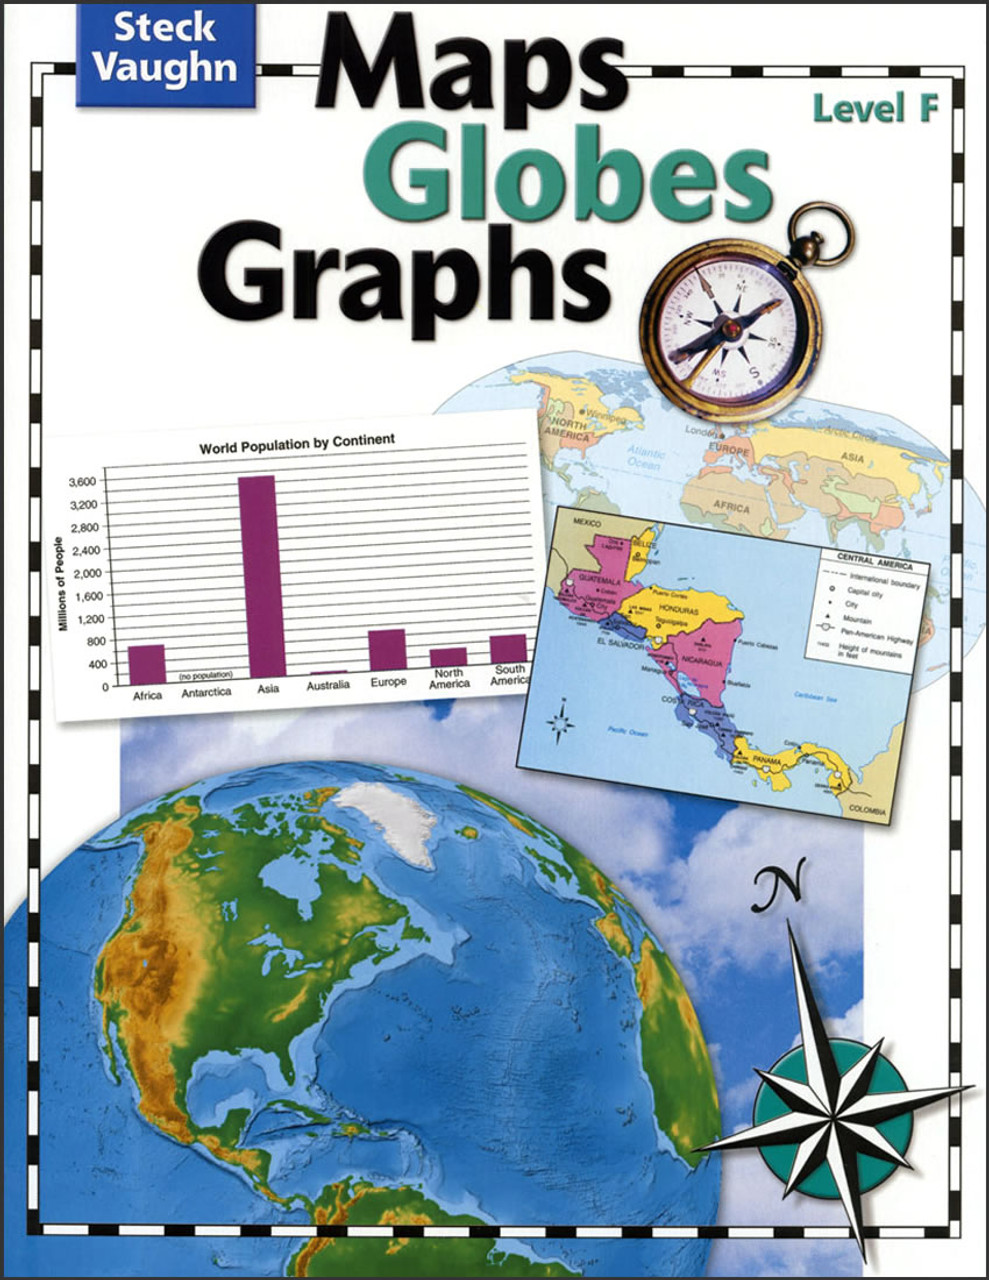 Maps Globes Graphs: Level F